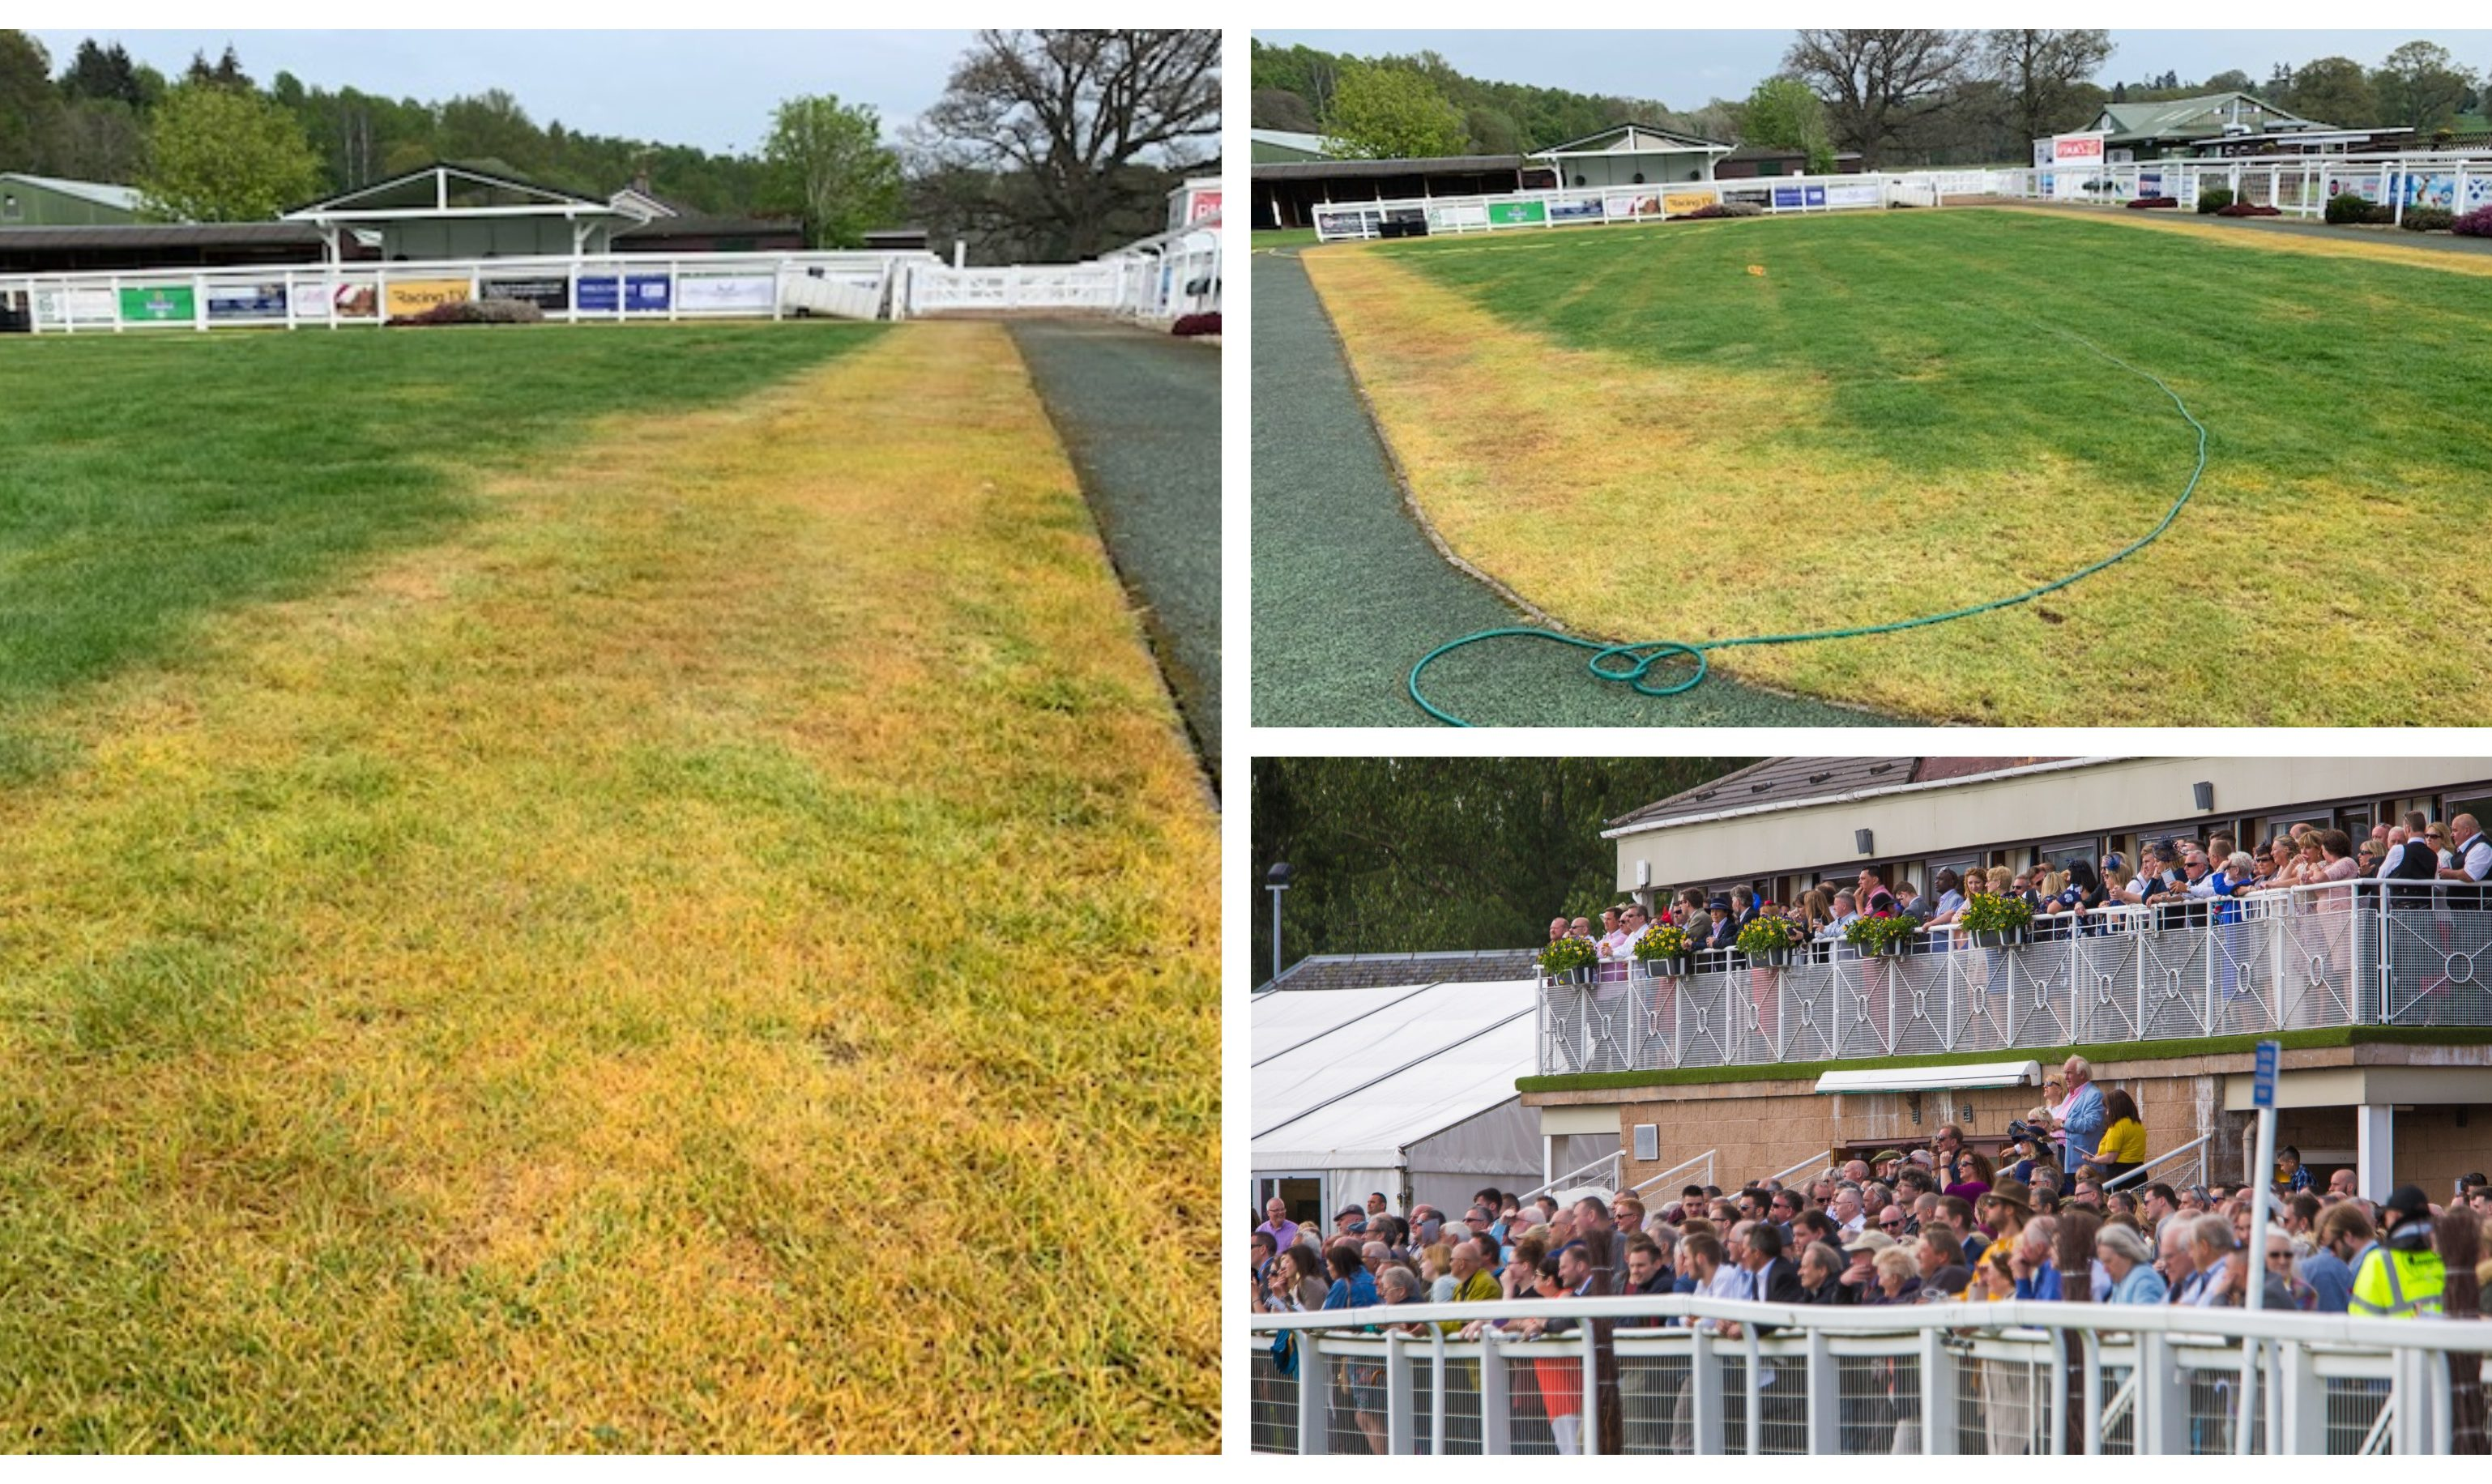 Damage to the presentation area of Perth Racecourse has been caused by an unknown chemical.